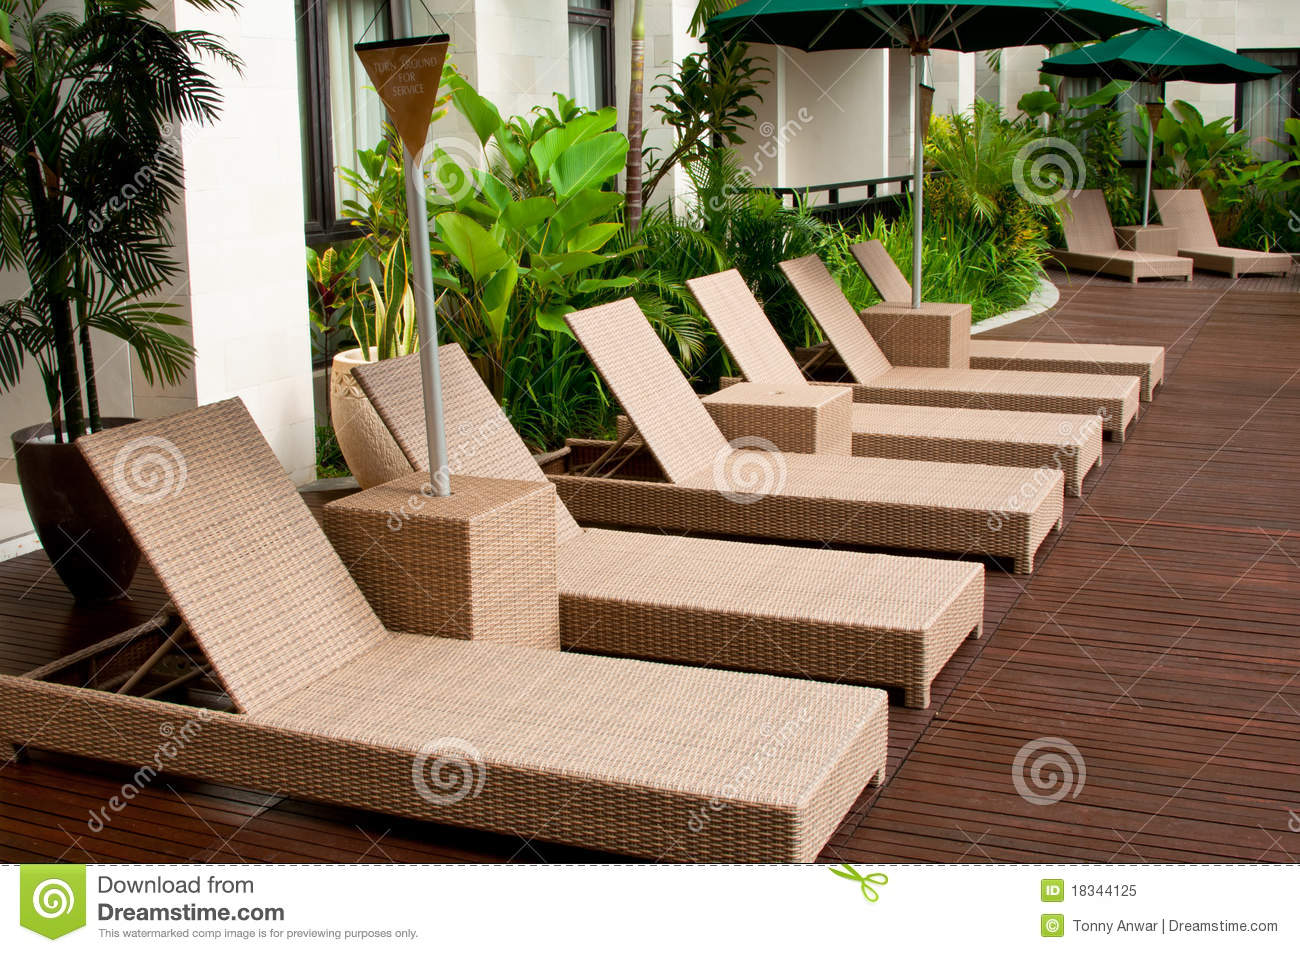 Outdoor Furniture - Outdoor Furniture Stock Image. Image Of Vacation, Design - 18344125